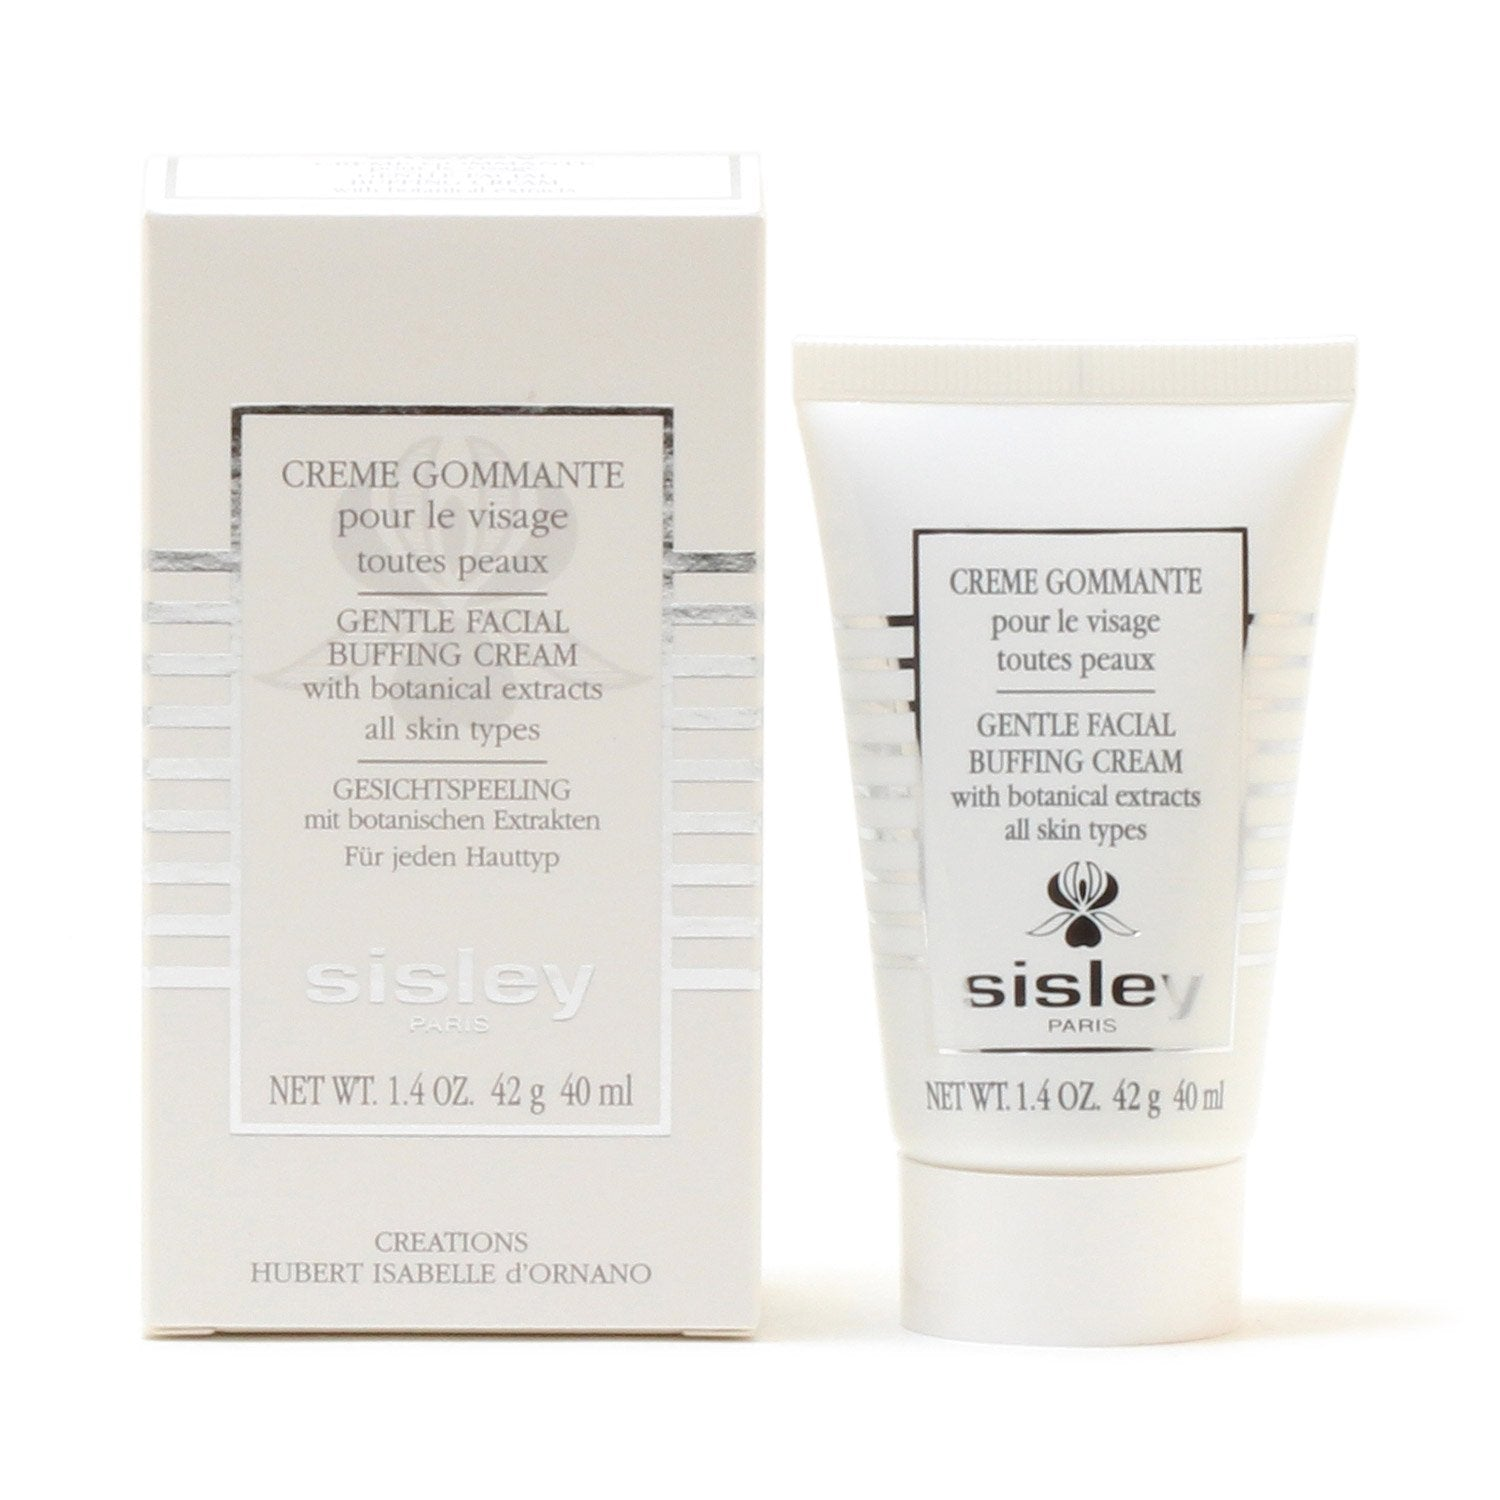 Skin Care - SISLEY GENTLE FACIAL BUFFING CREAM WITH BOTANICAL EXTRACTS, 1.7 OZ